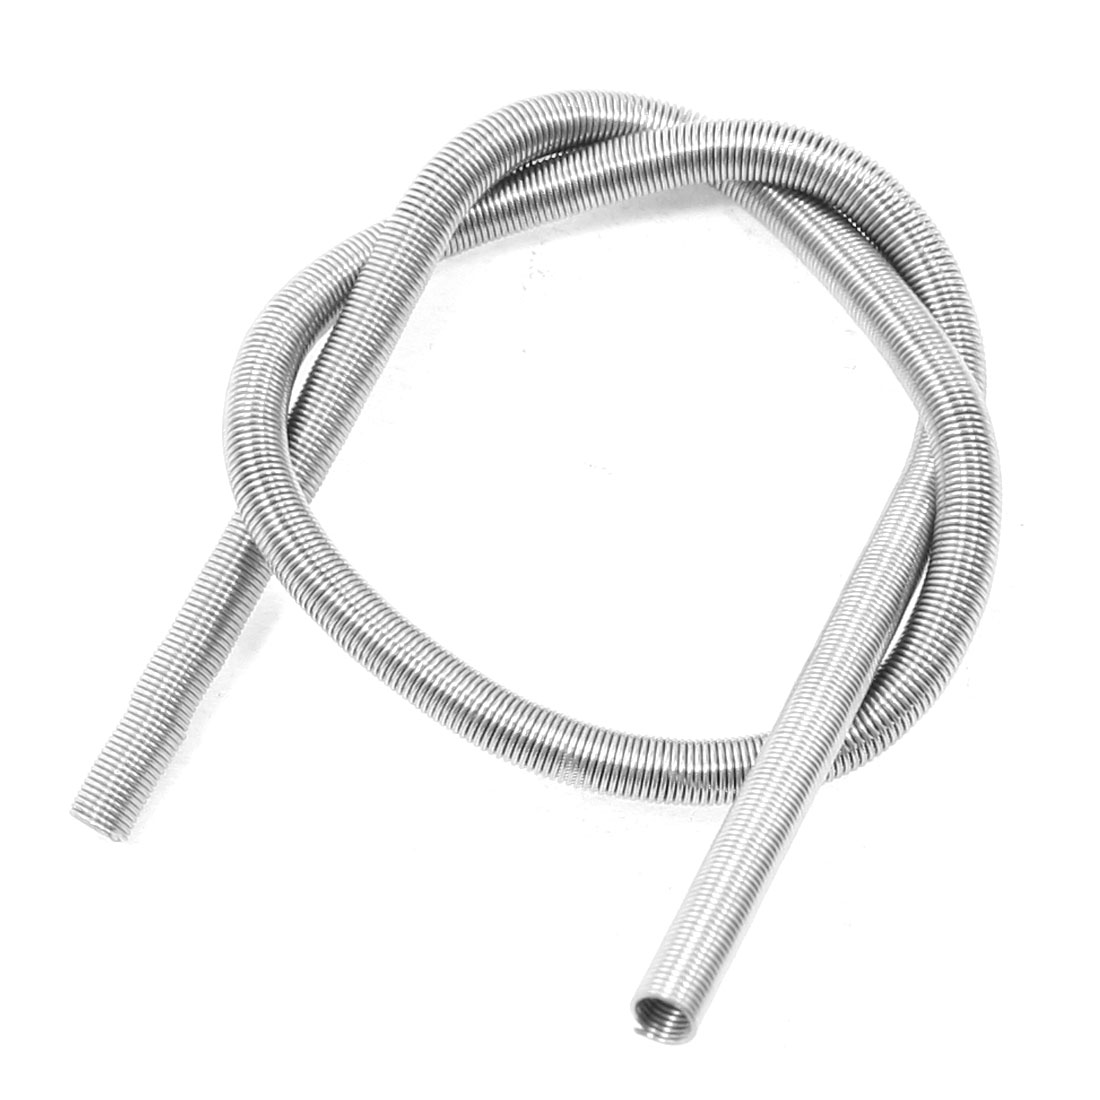 300mmx4.5mm Forging Pottery Heating Element Wire Coil 800W 220VAC